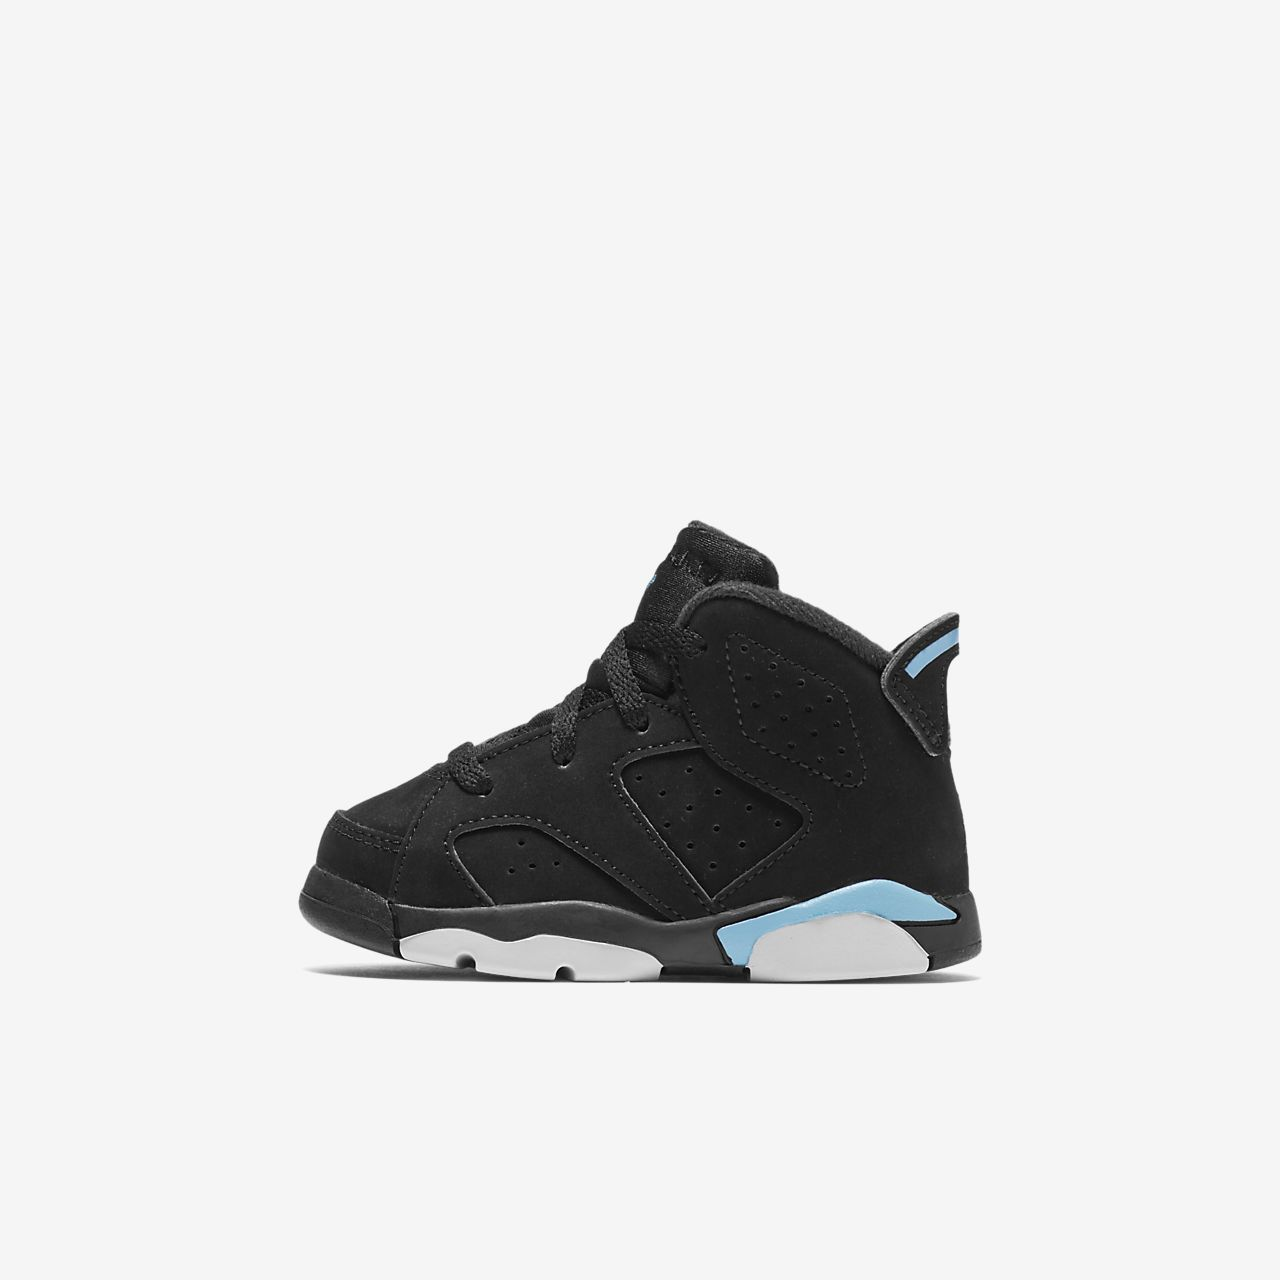 ... Air Jordan Retro 6 Infant/Toddler Shoe